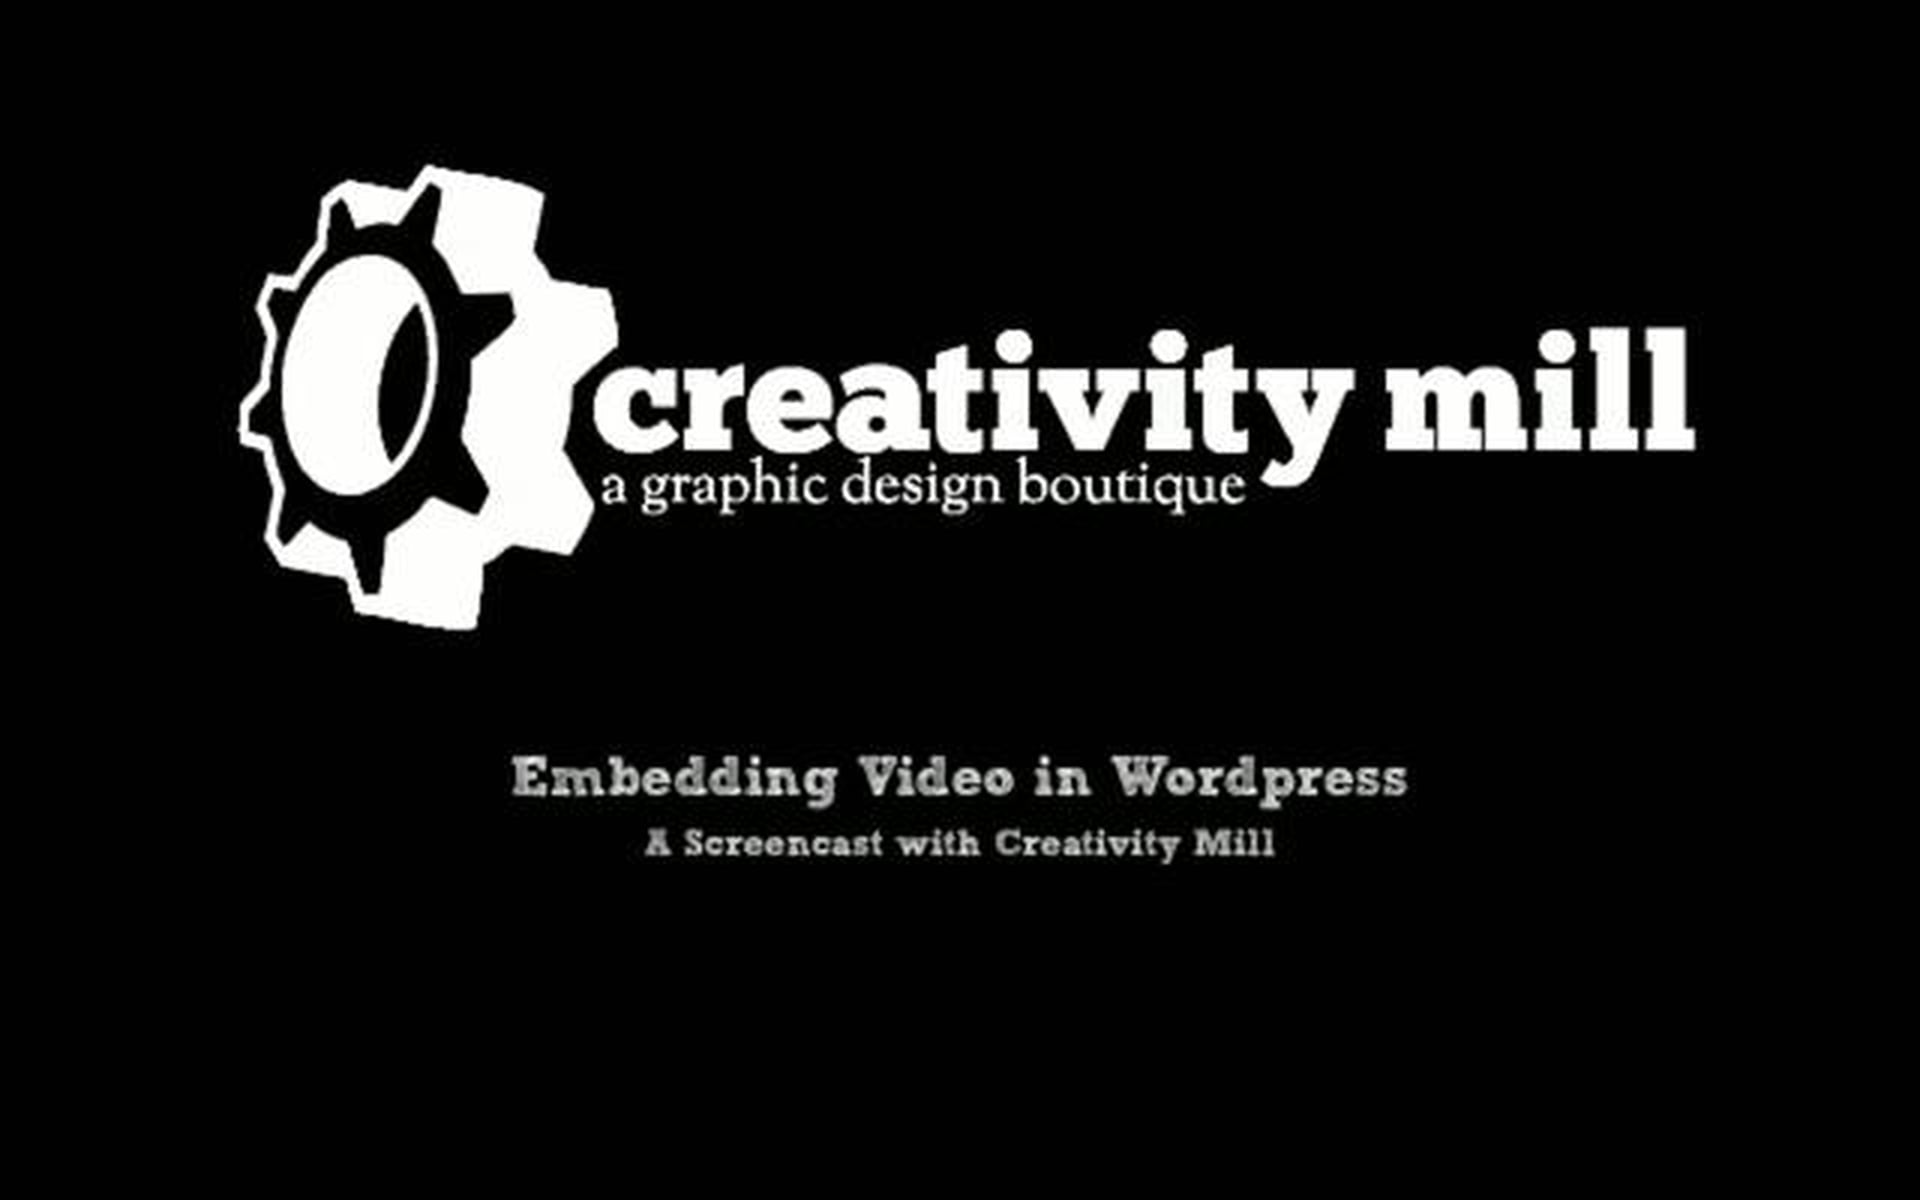 How to Embed Video in WordPress